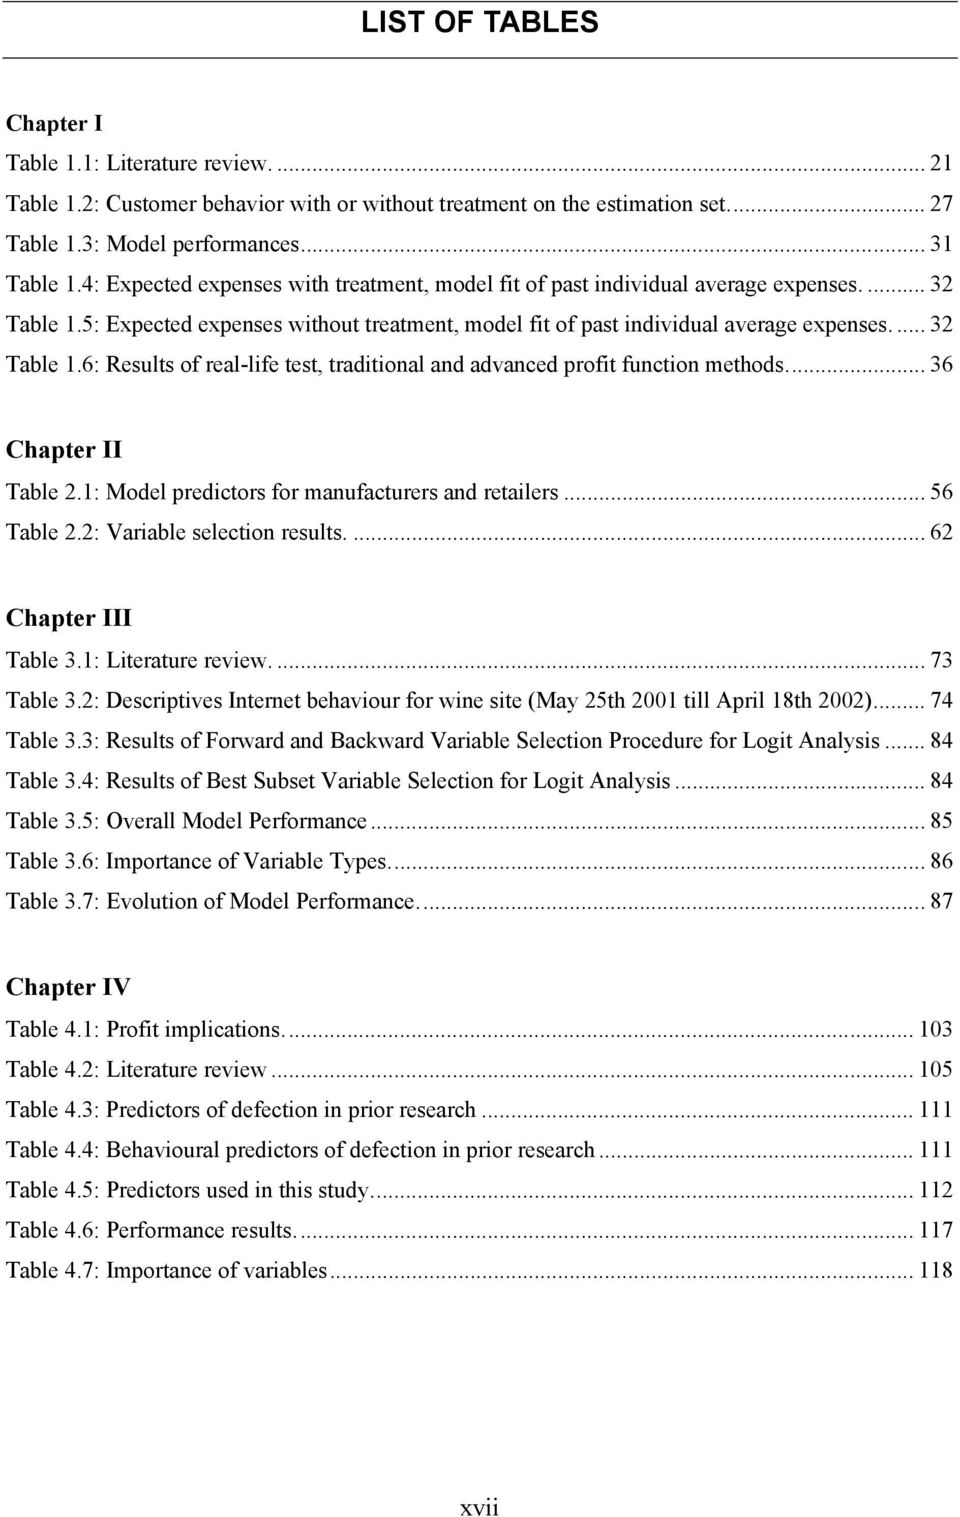 .. 36 Chapter II Table 2.1: Model predictors for manufacturers and retailers... 56 Table 2.2: Variable selection results.... 62 Chapter III Table 3.1: Literature review.... 73 Table 3.